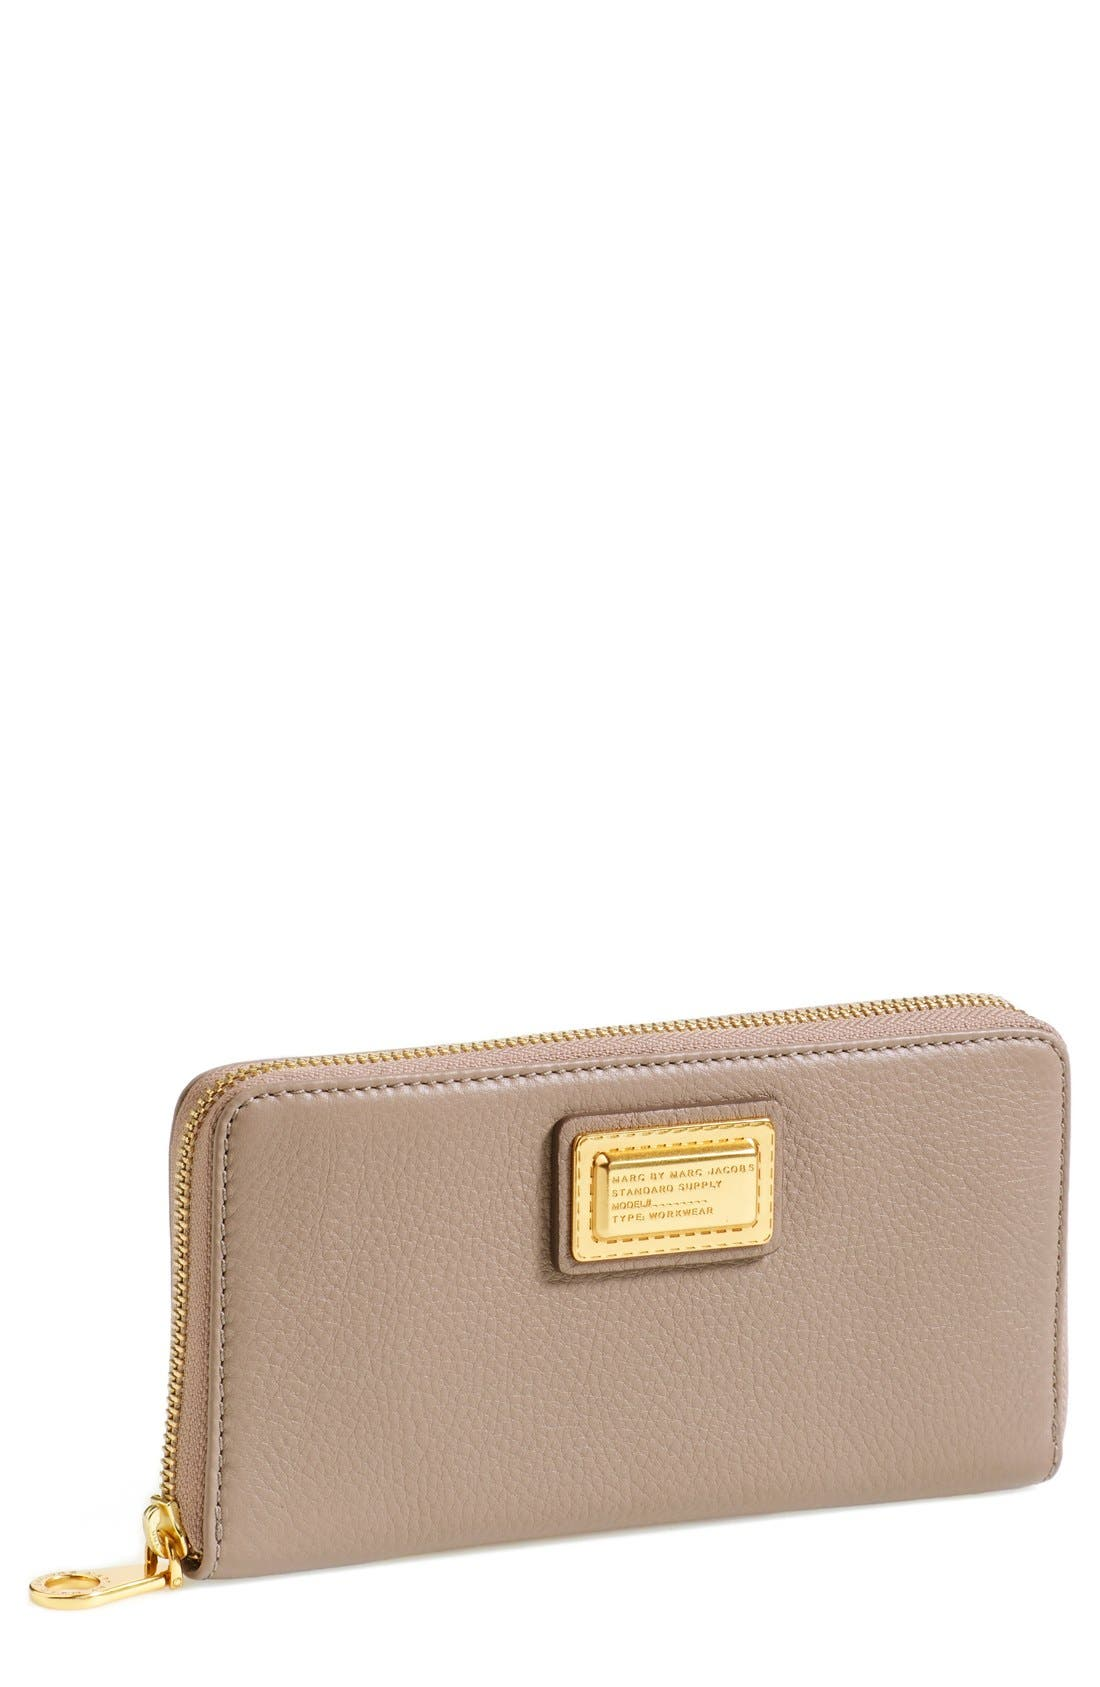 Alternate Image 1 Selected - MARC BY MARC JACOBS 'Vertical Zippy' Wallet